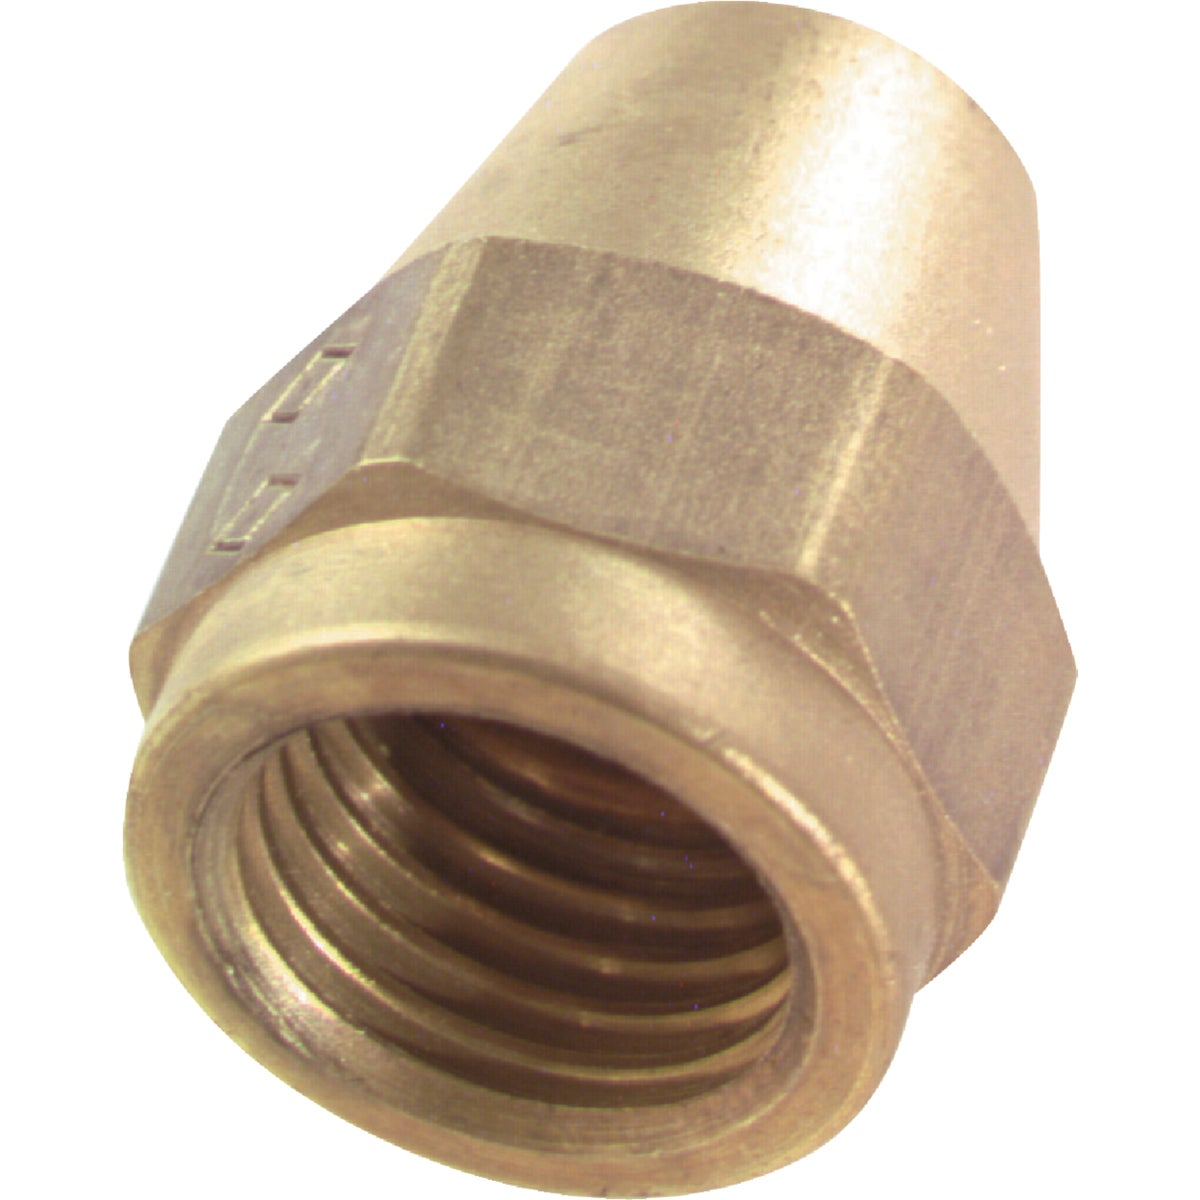 "1/2"" FLARE NUT - 458659 by Do it Best"